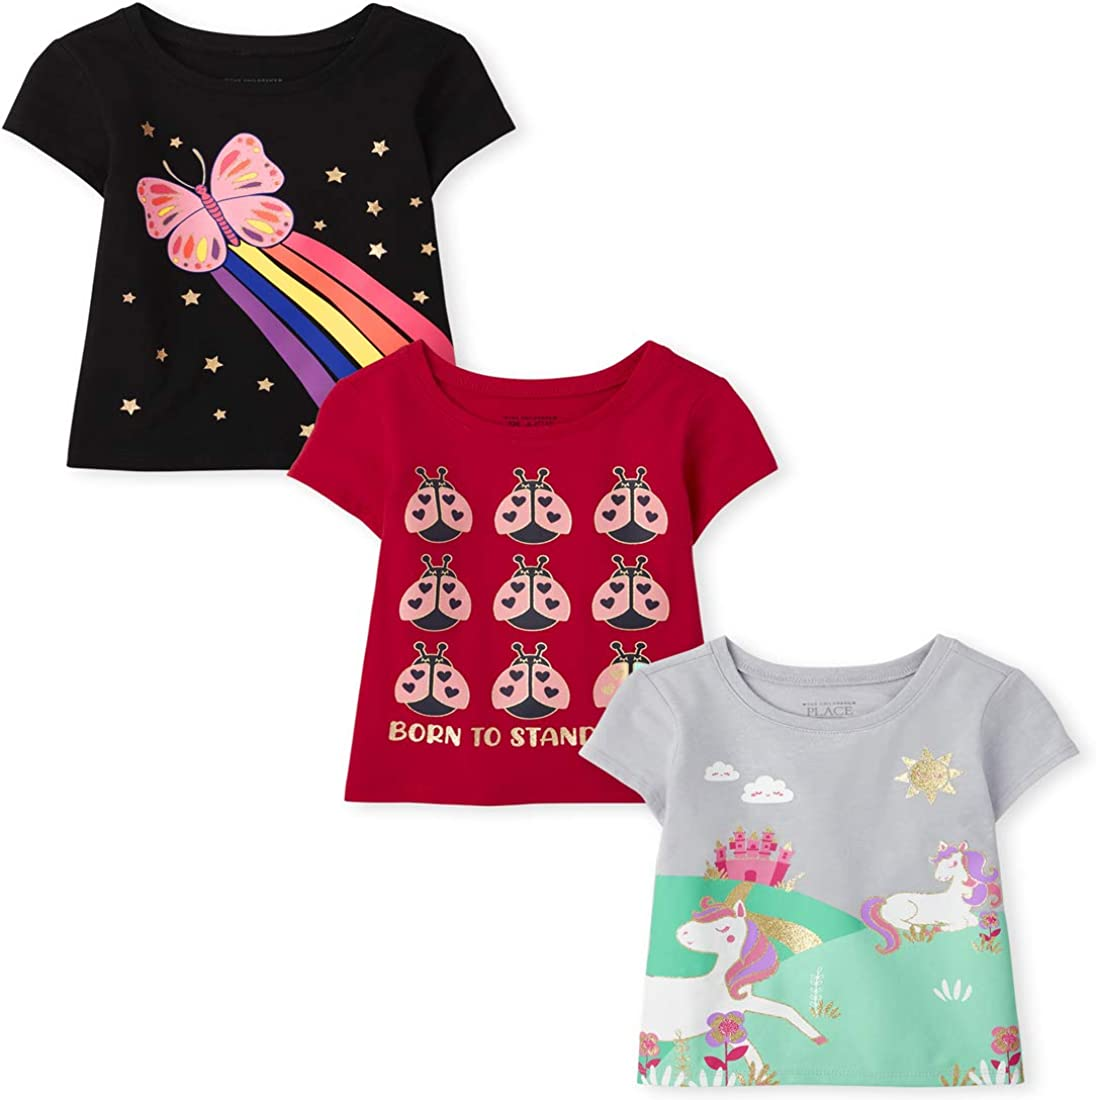 The Children's Place Baby Toddler Girl Short Sleeve Graphic T-Shirt 3-Pack